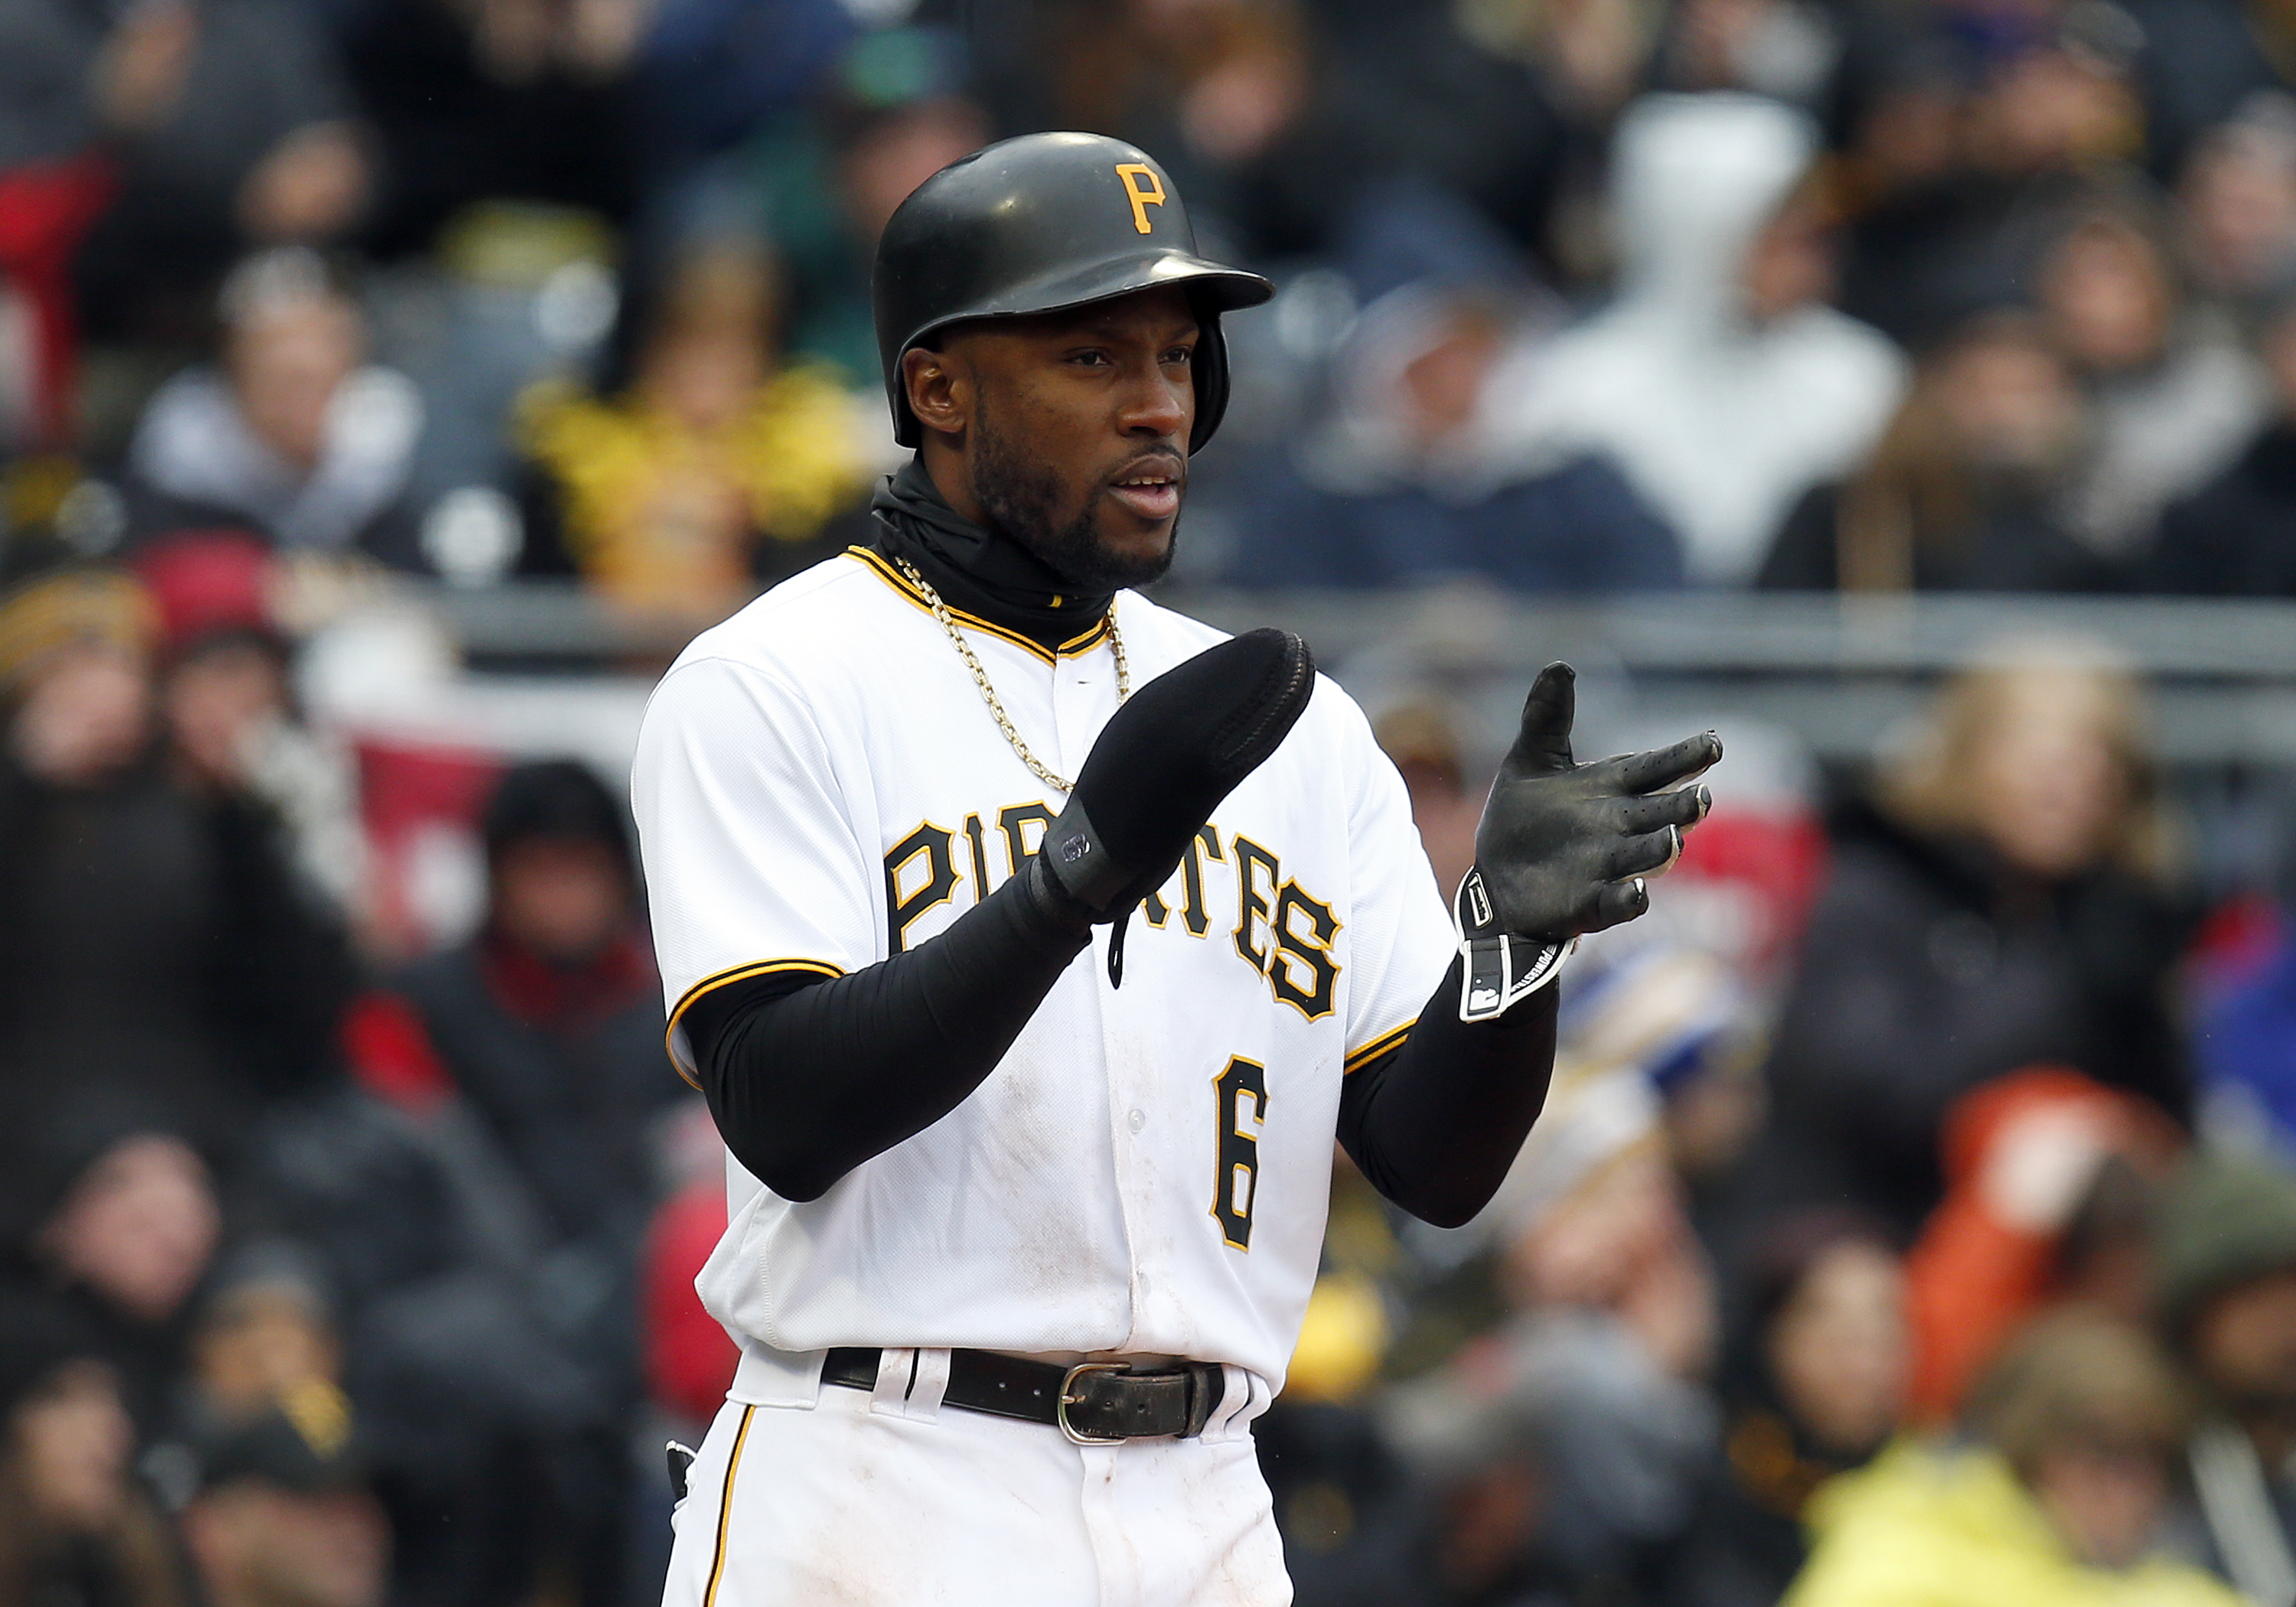 What Should the Pirates do when Starling Marte Returns?